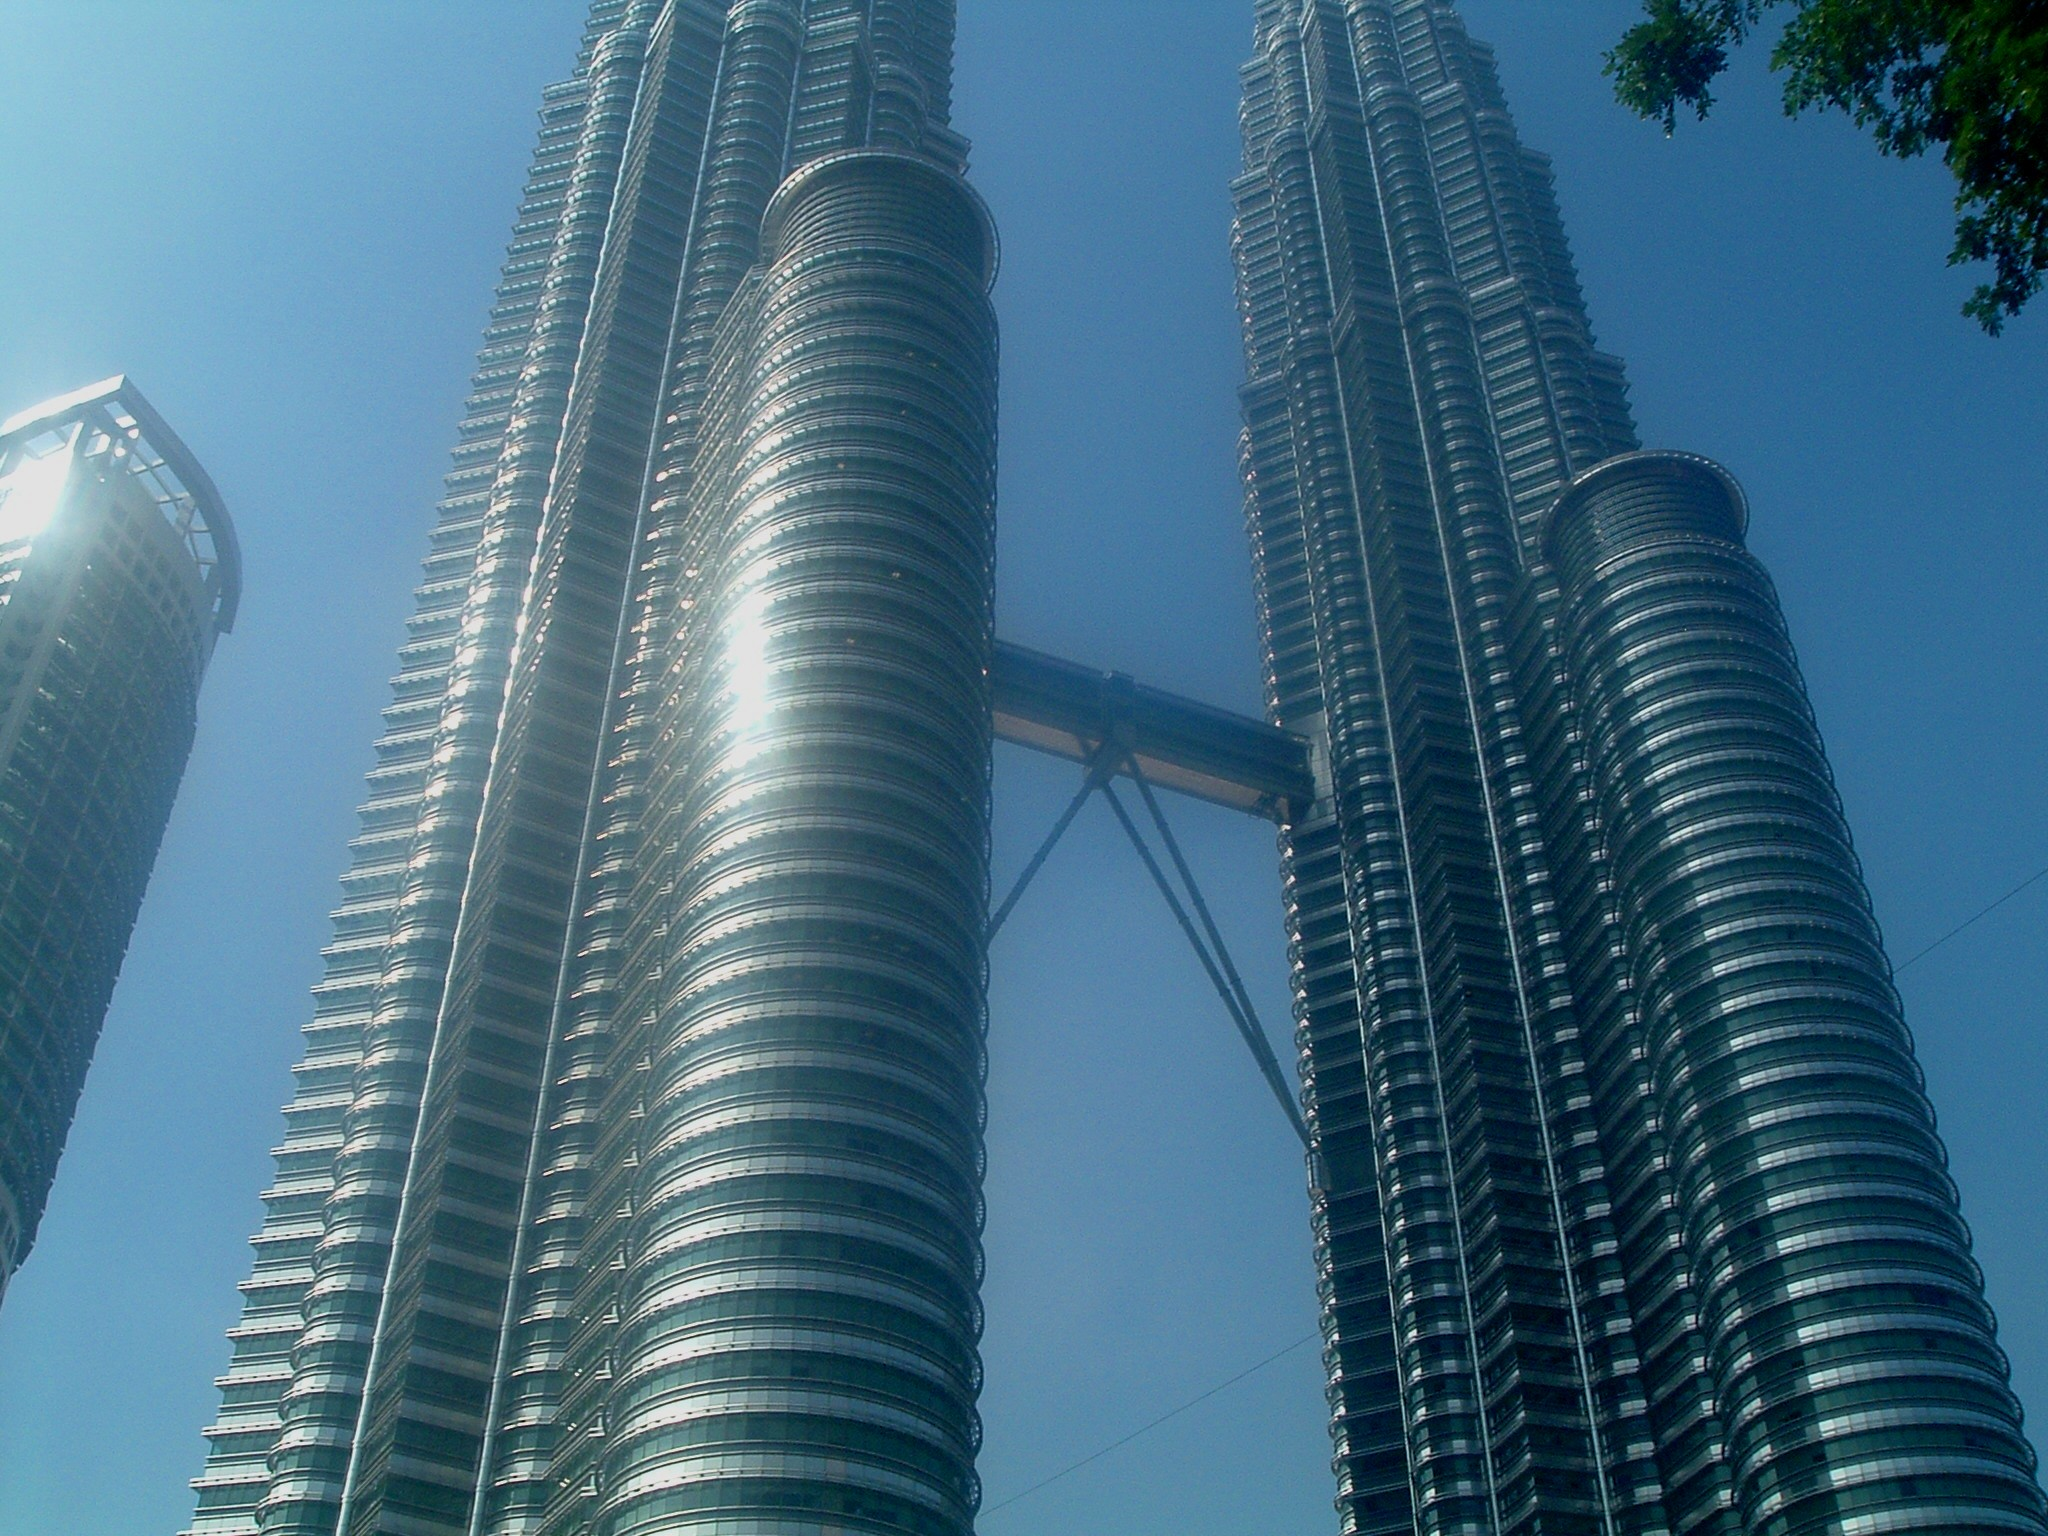 petronas towers.JPG